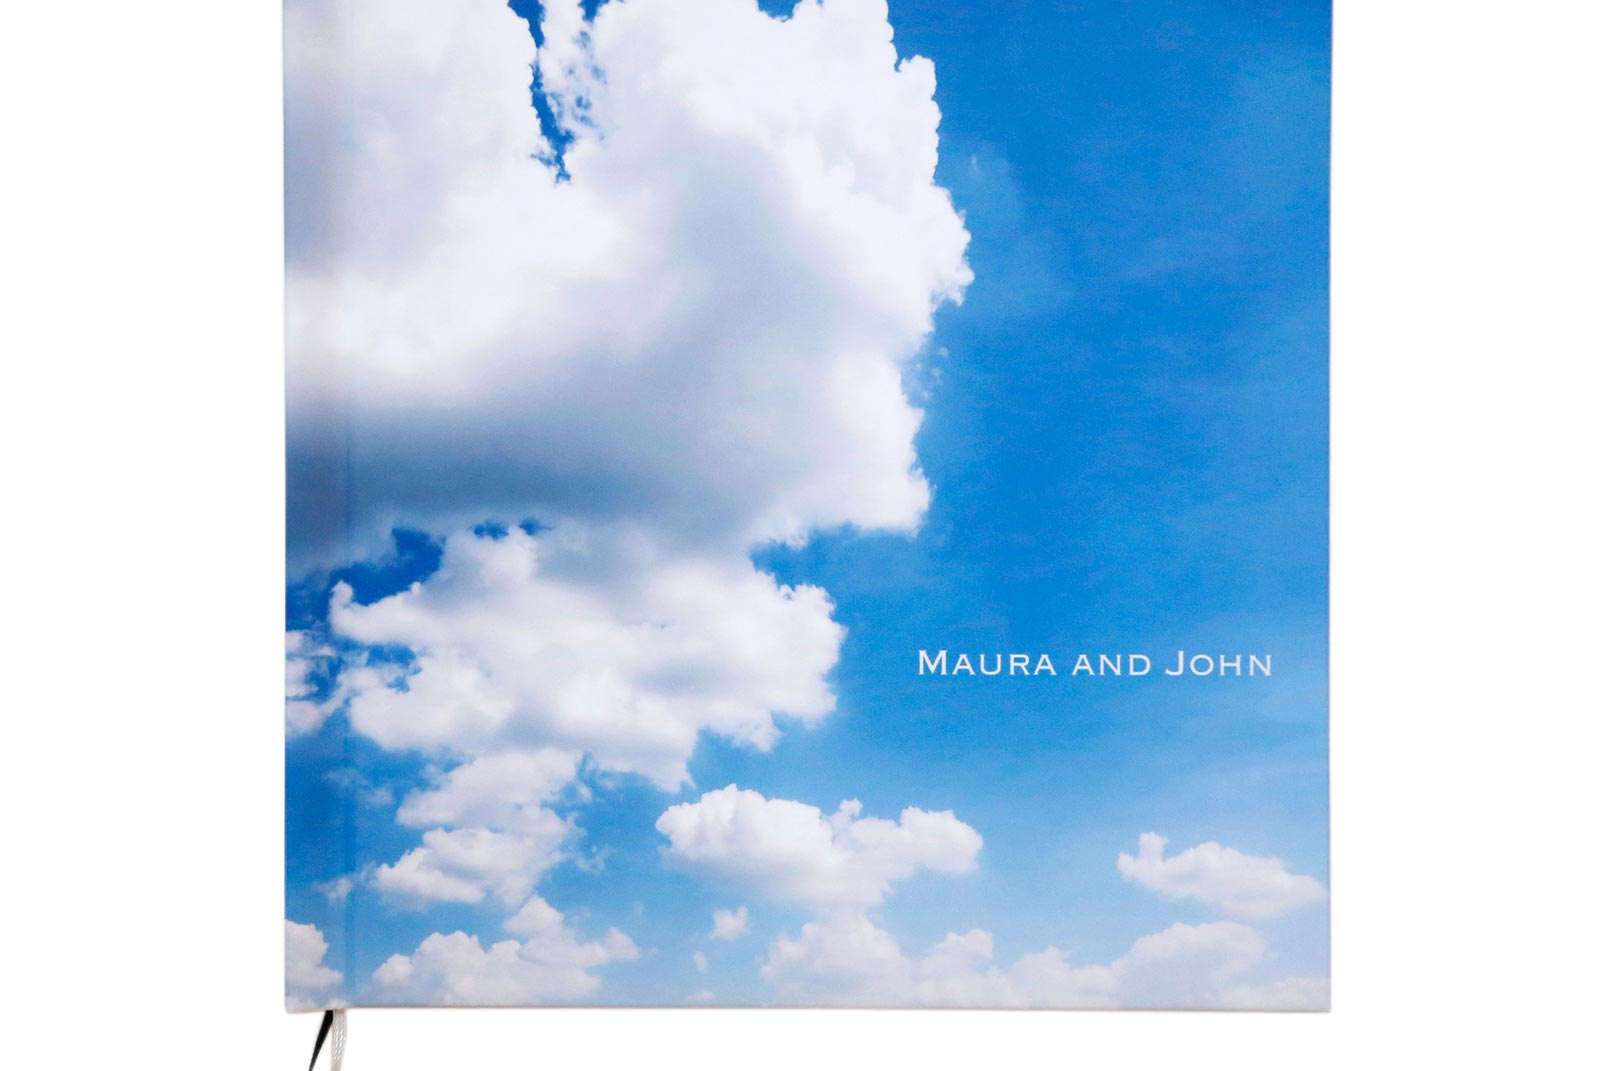 Wedding album cover with photograph of blue sky and white clouds